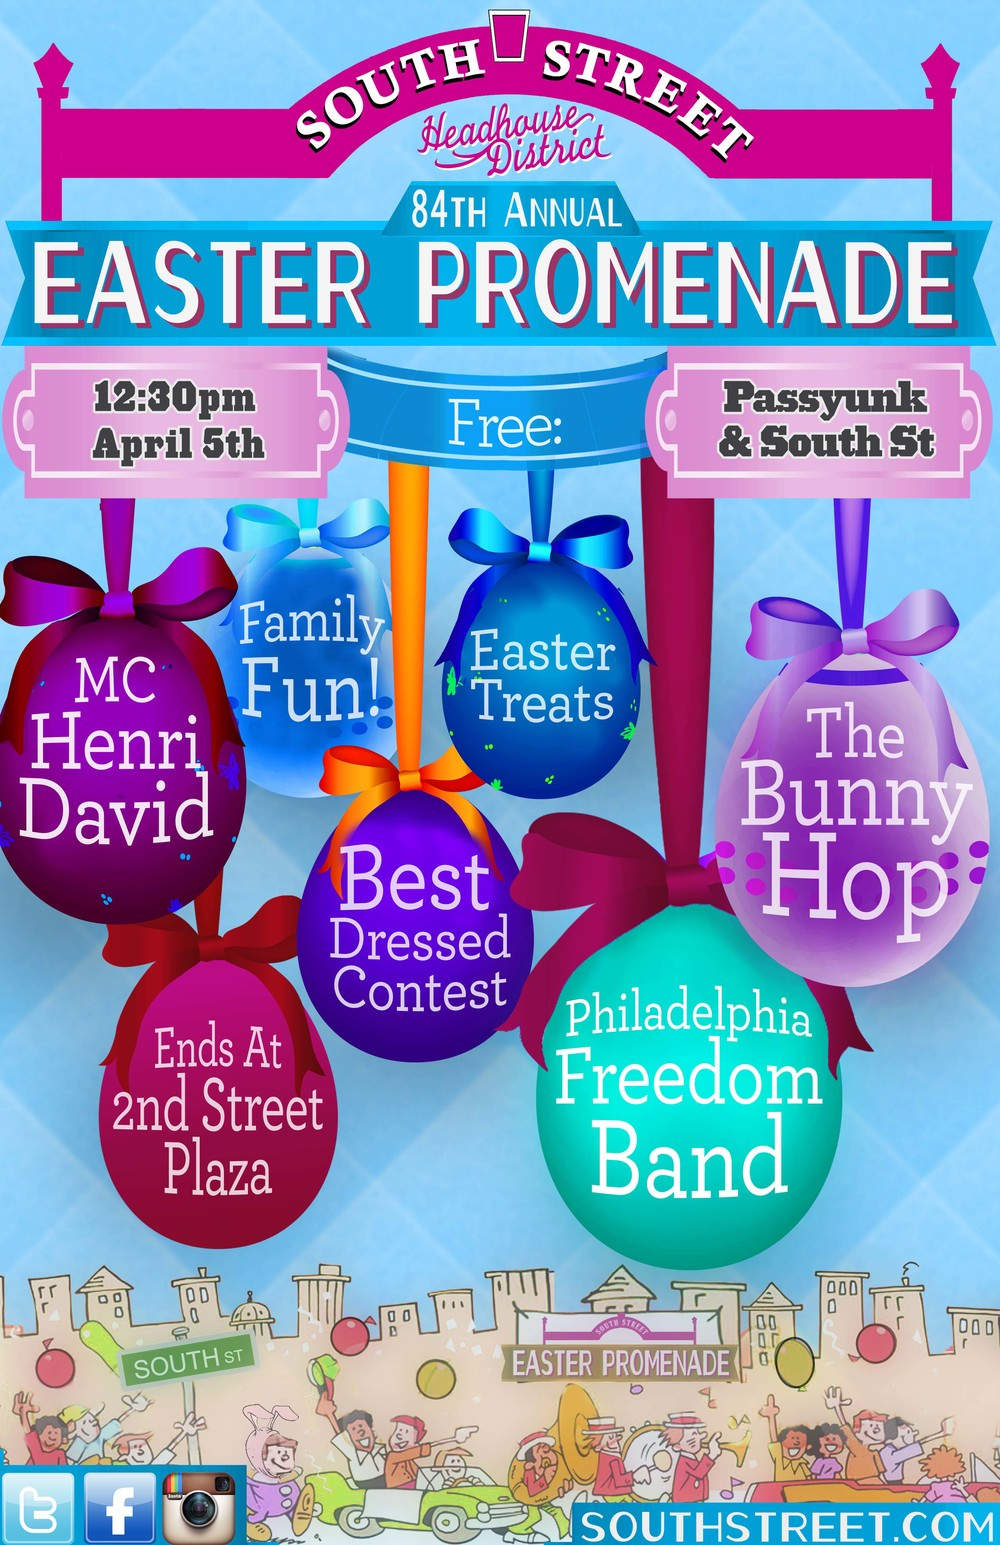 84th Annual Easter Promenade on South Street Sunday, April 5, 2015